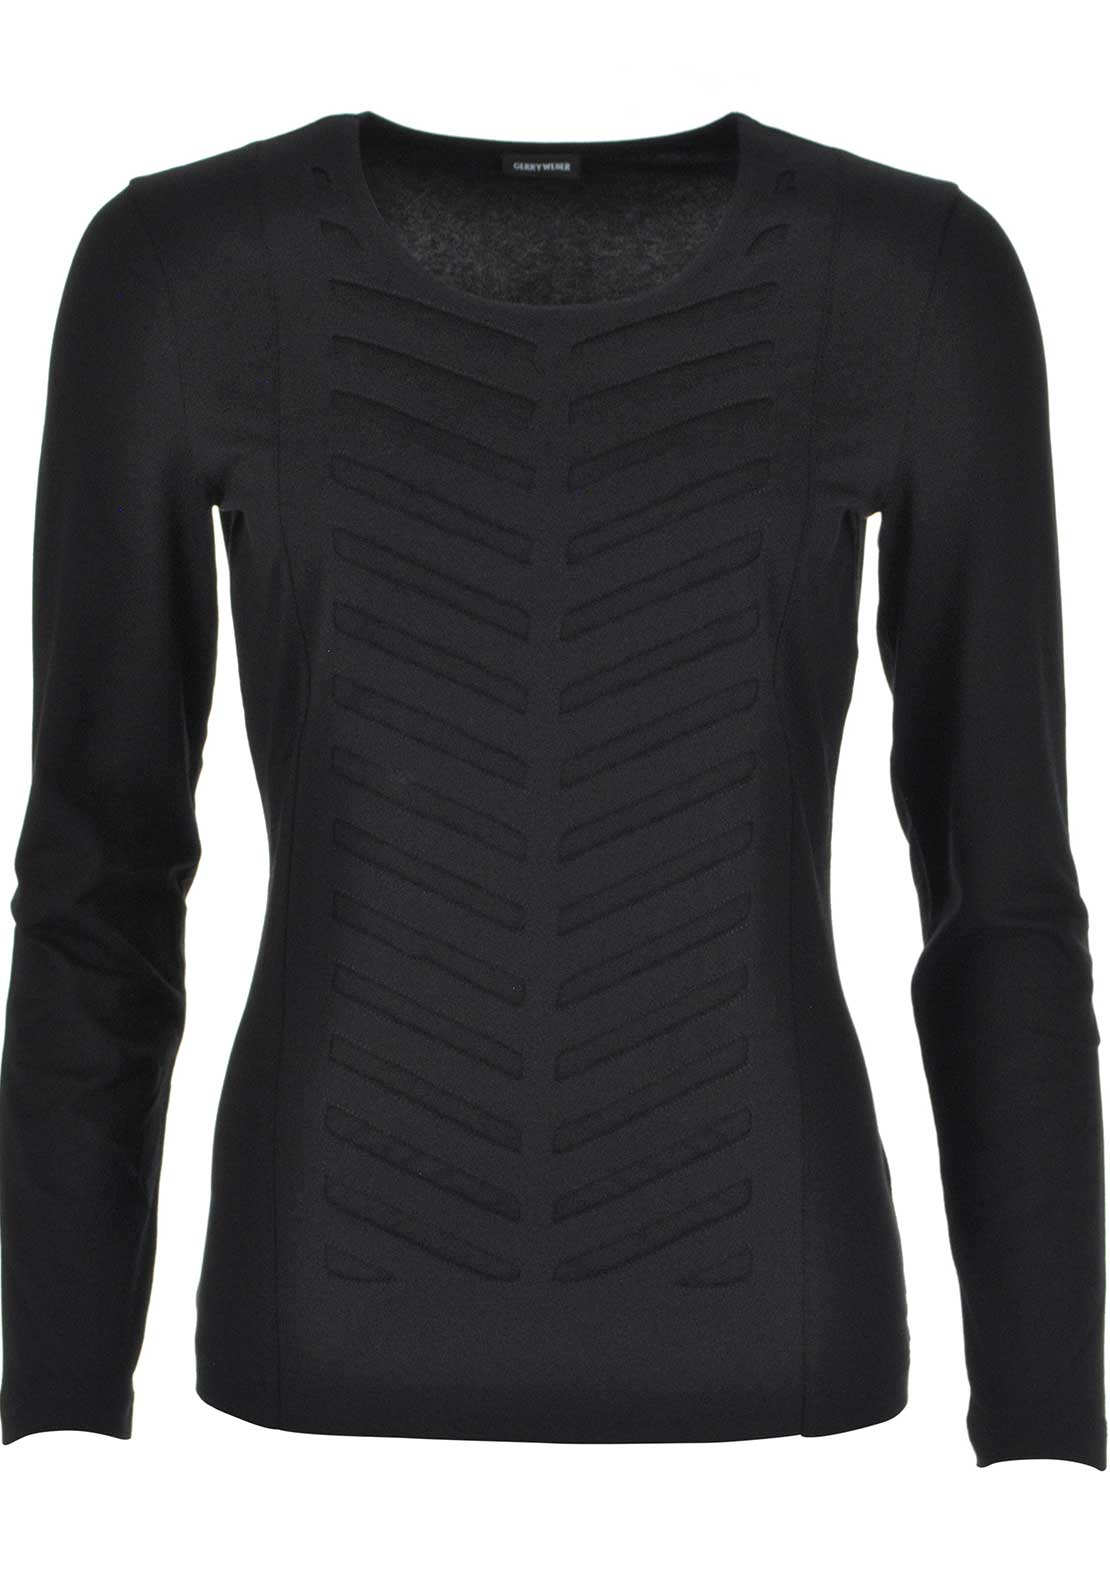 Gerry Weber Mesh Print Long Sleeve Top, Black